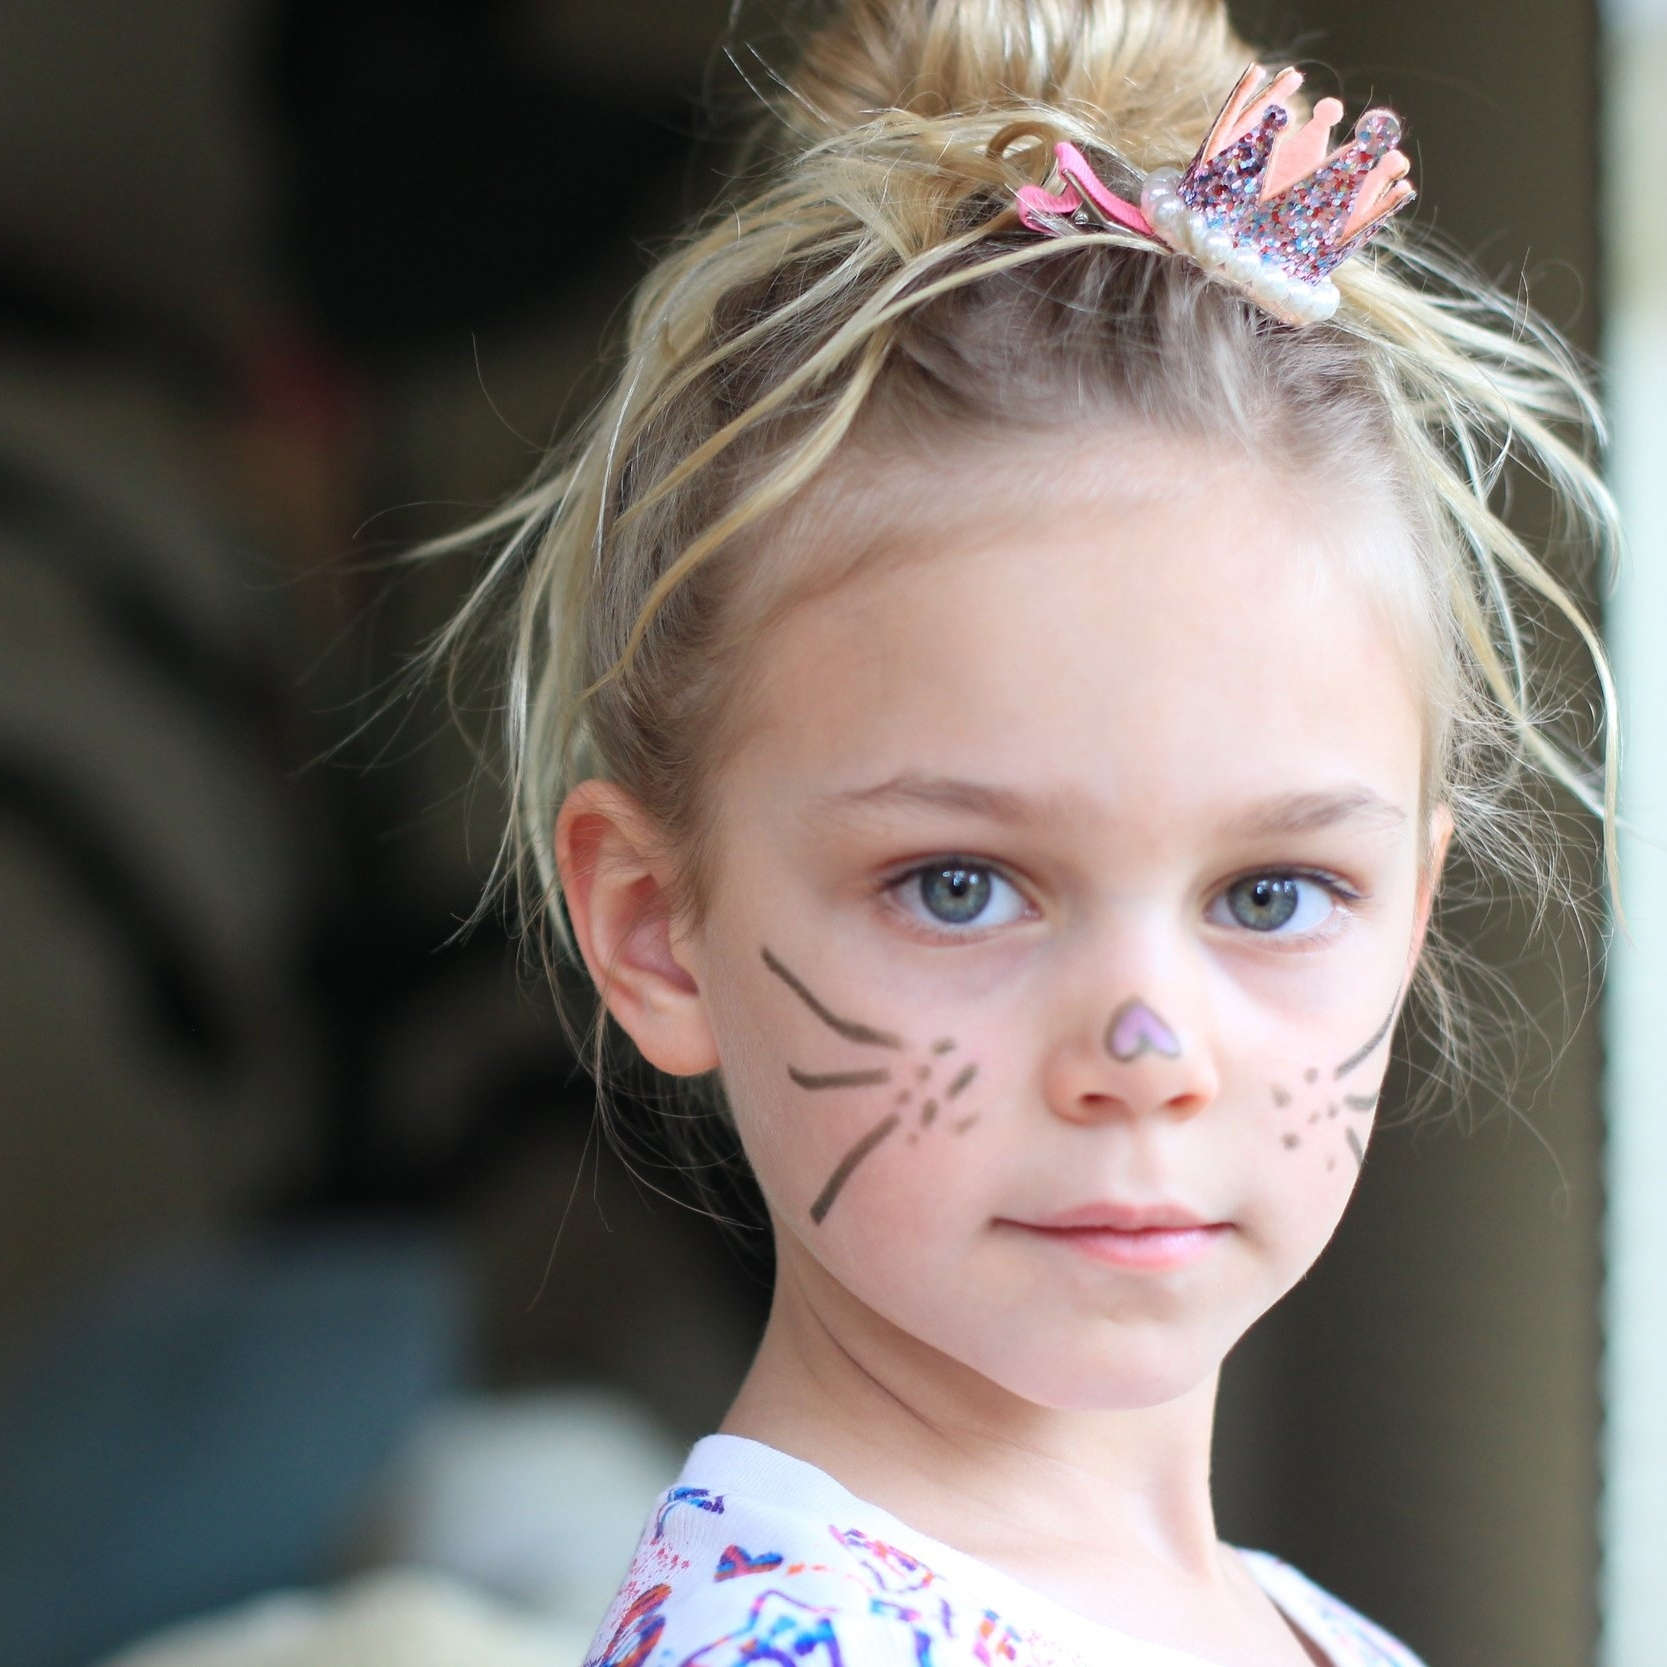 WINNIE (6) - Daughter of Karen. She is angelic and odd. Although she and Jimmy are on opposite ends of the age spectrum, they share a similar appreciation of the world around them.